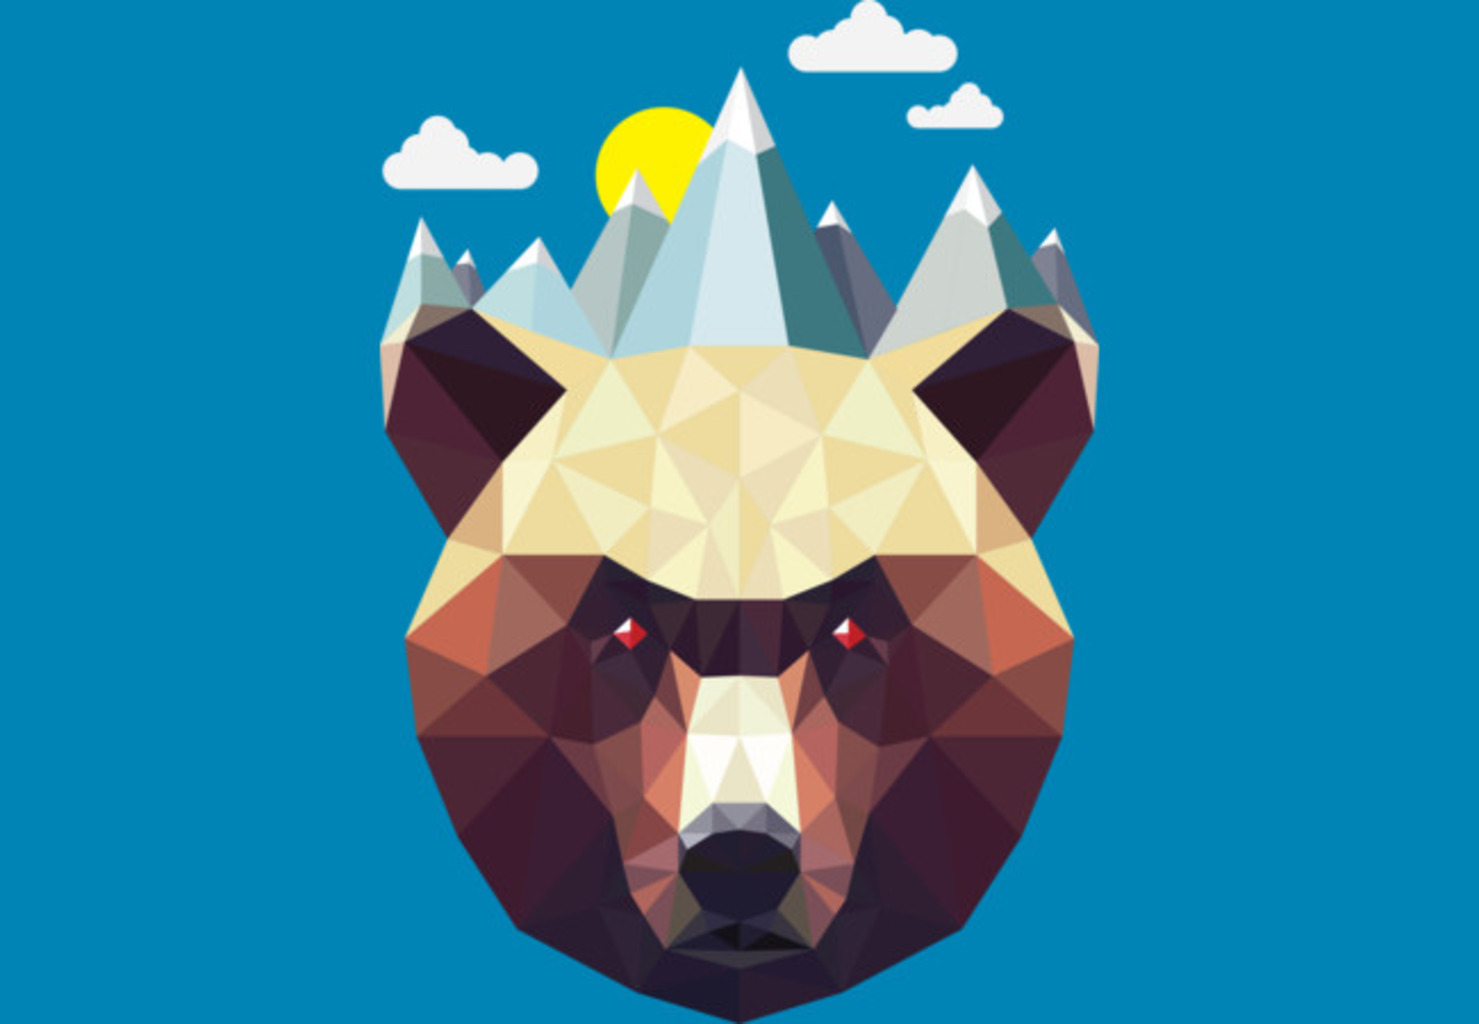 Design by Humans: Bear Mountain